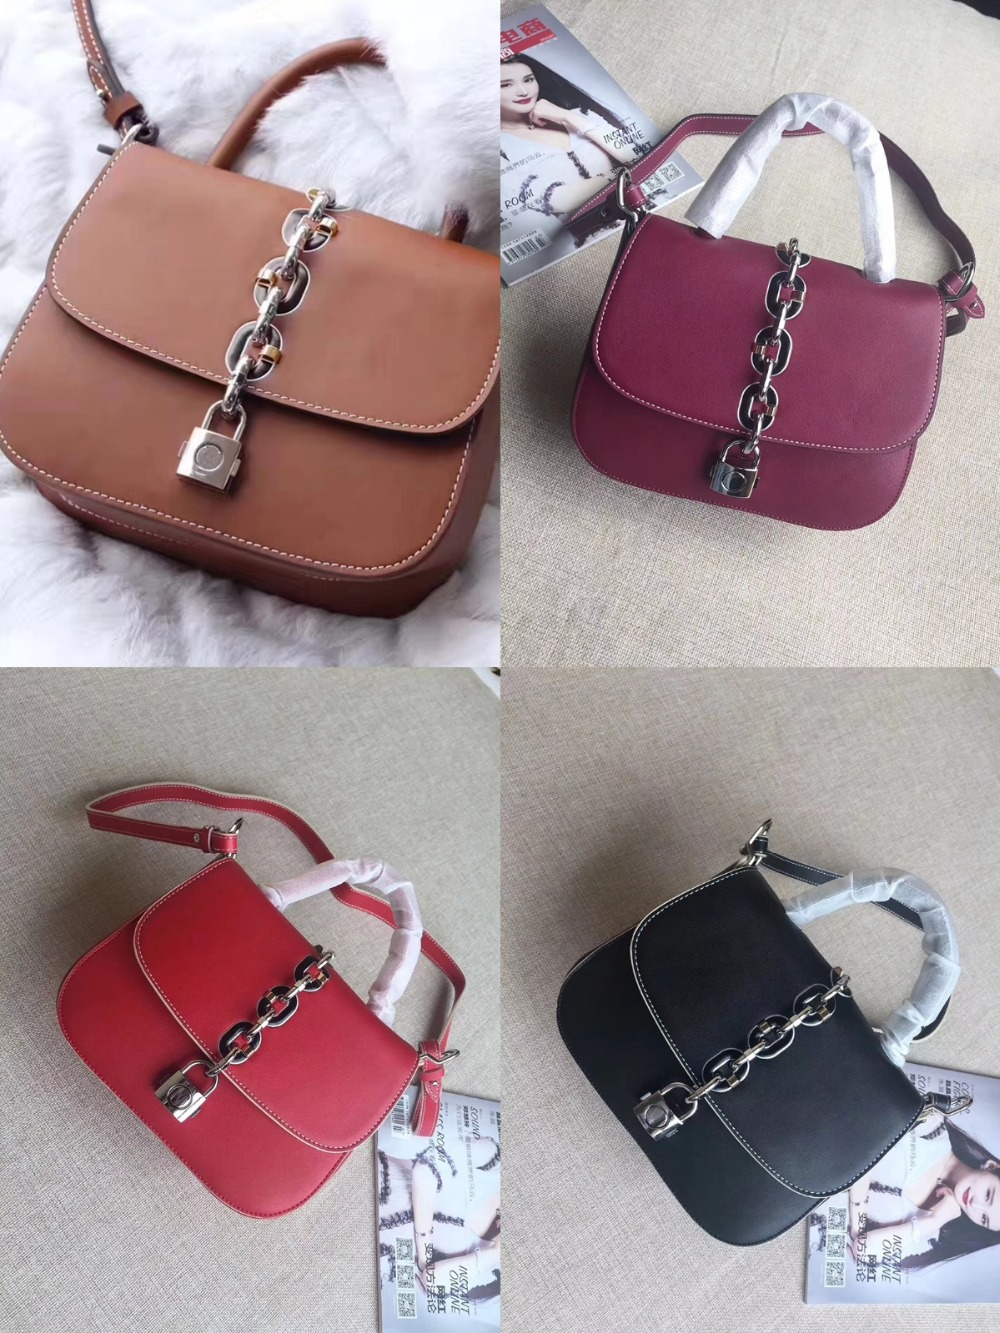 free shipping New retro chain shoulder bag leather small square bag fashion lock her portable leisure small round female bagfree shipping New retro chain shoulder bag leather small square bag fashion lock her portable leisure small round female bag